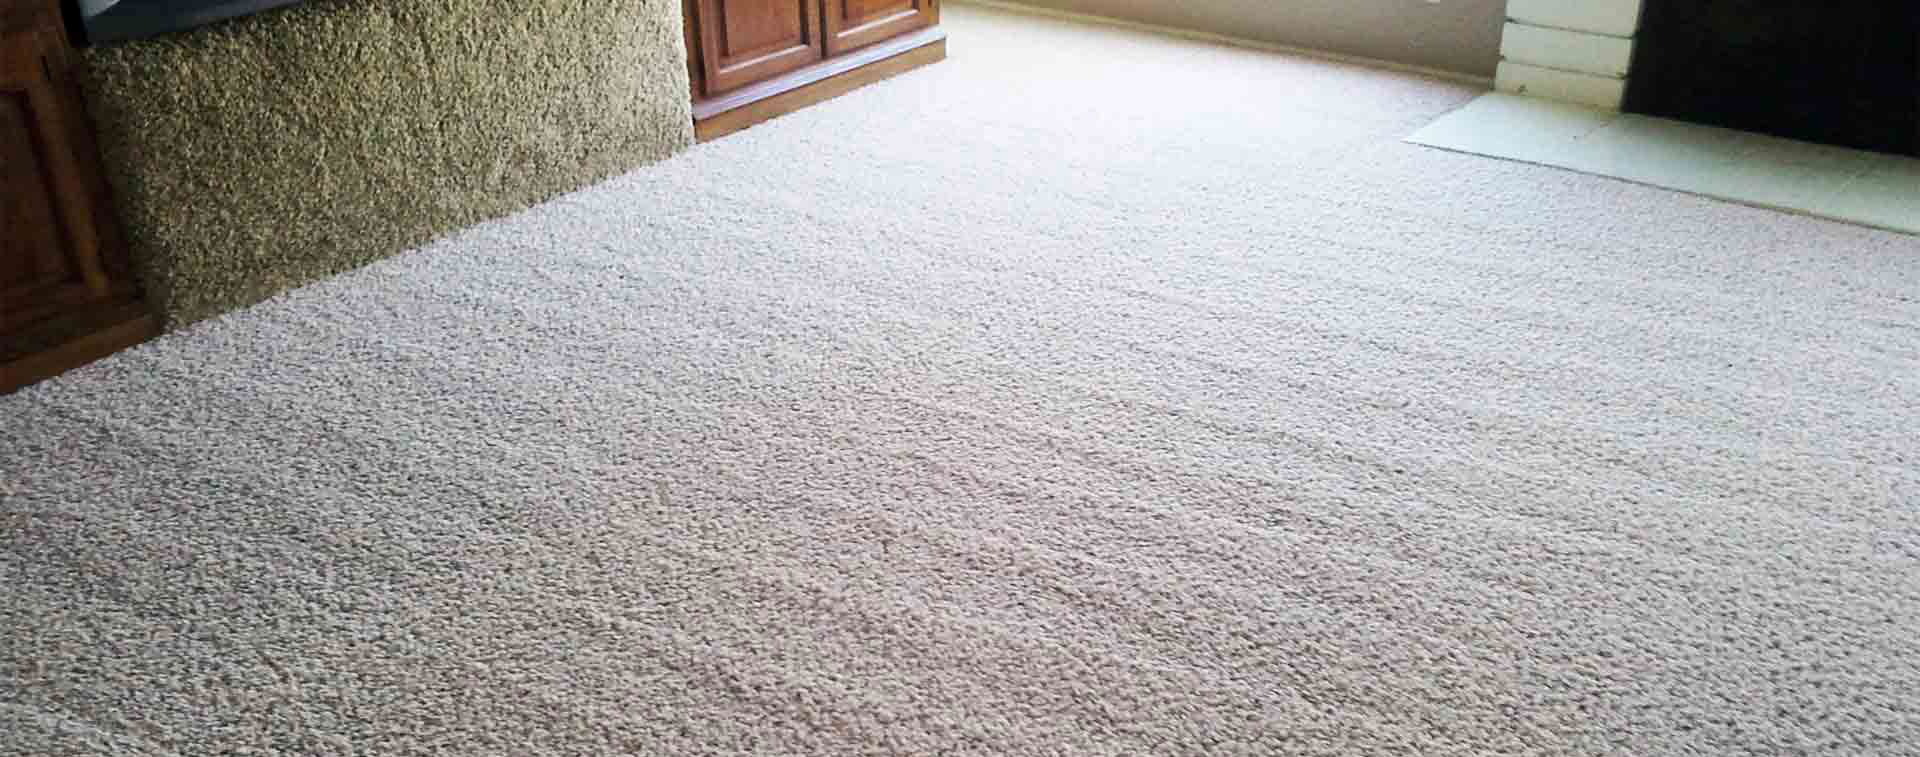 Carpet Cleaning Glenhaven